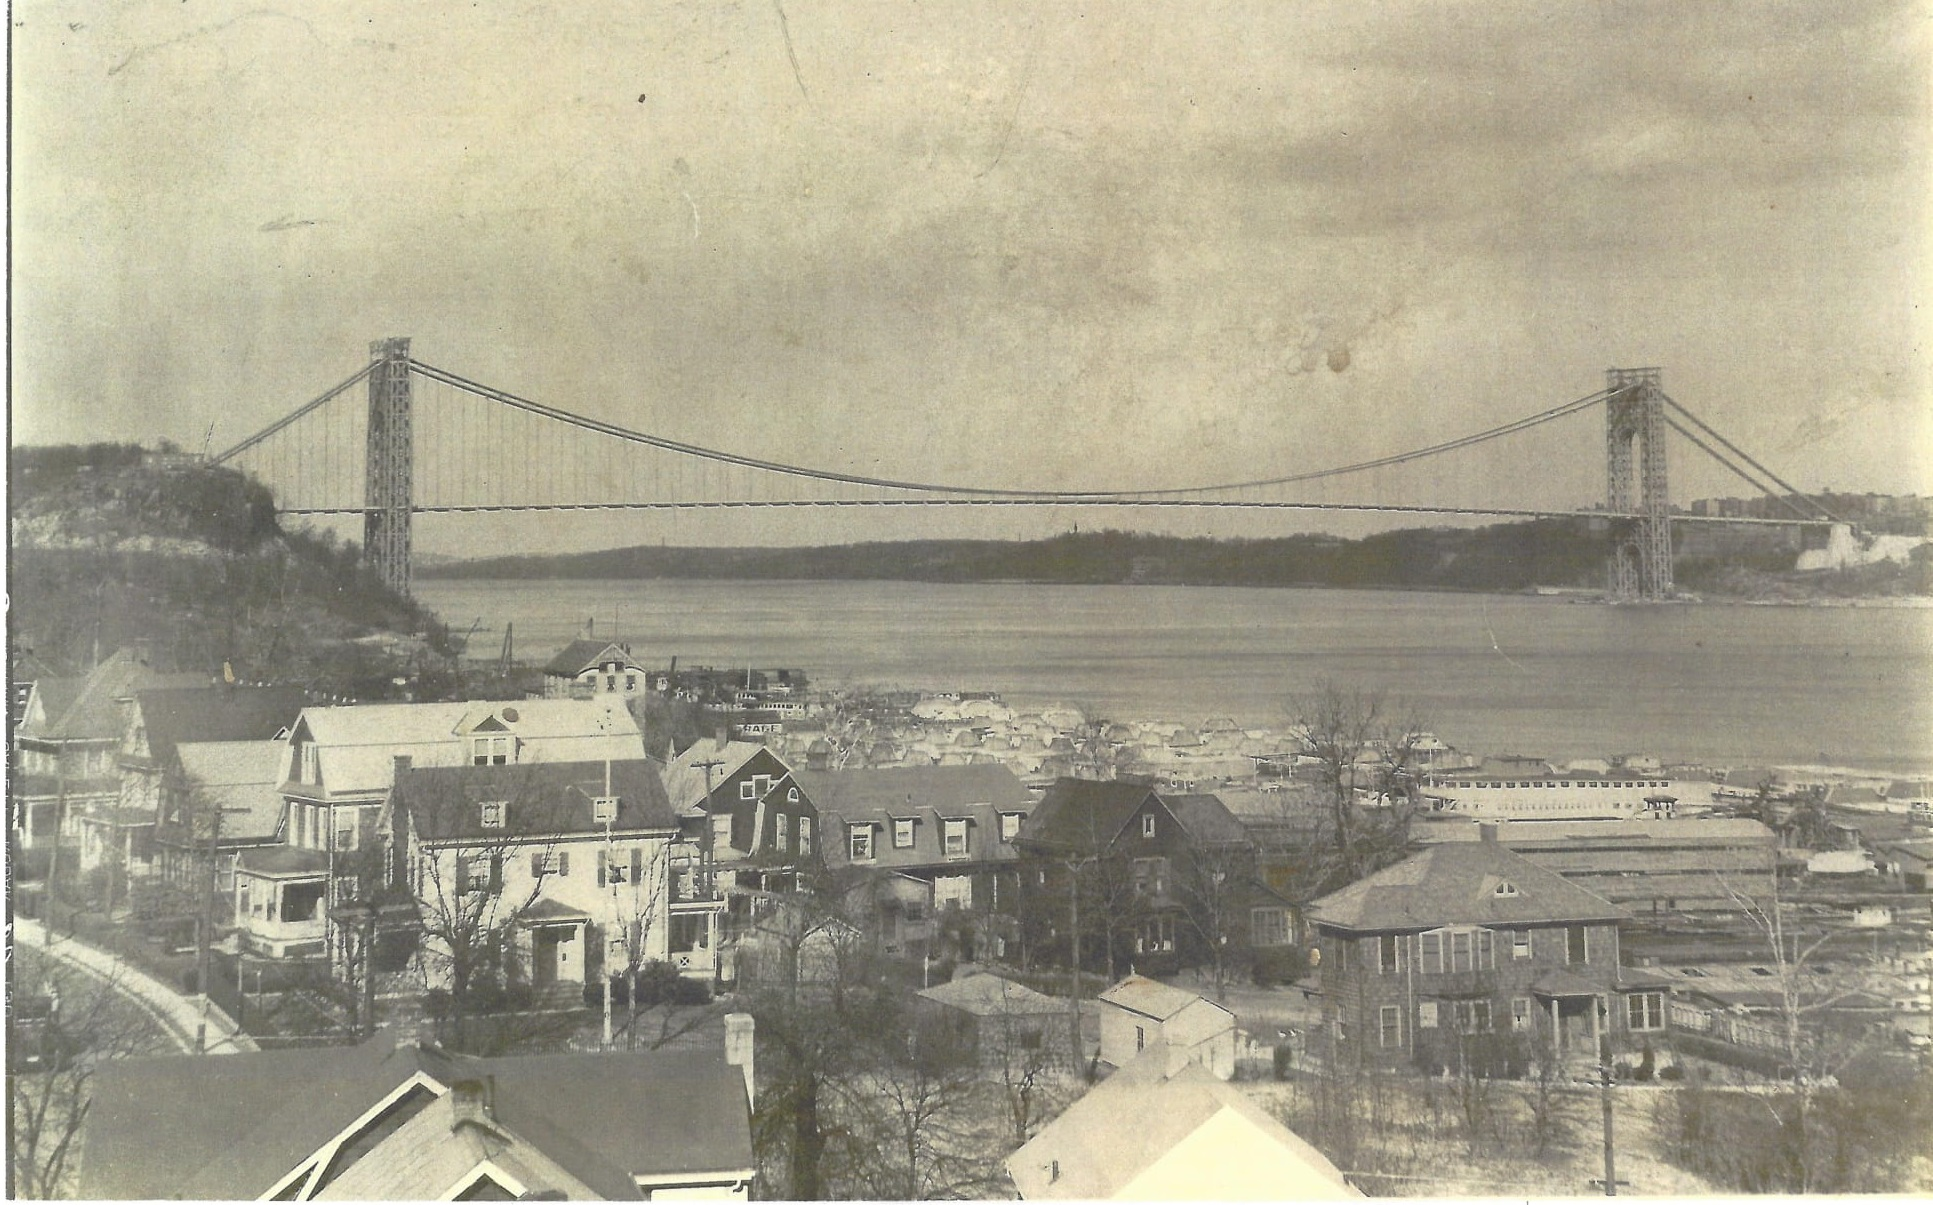 George Washington Bridge March 1931 - By 1931, with the opening of the George Washington Bridge, Leonia underwent another period of population growth.(Harry E. Moore Collection)